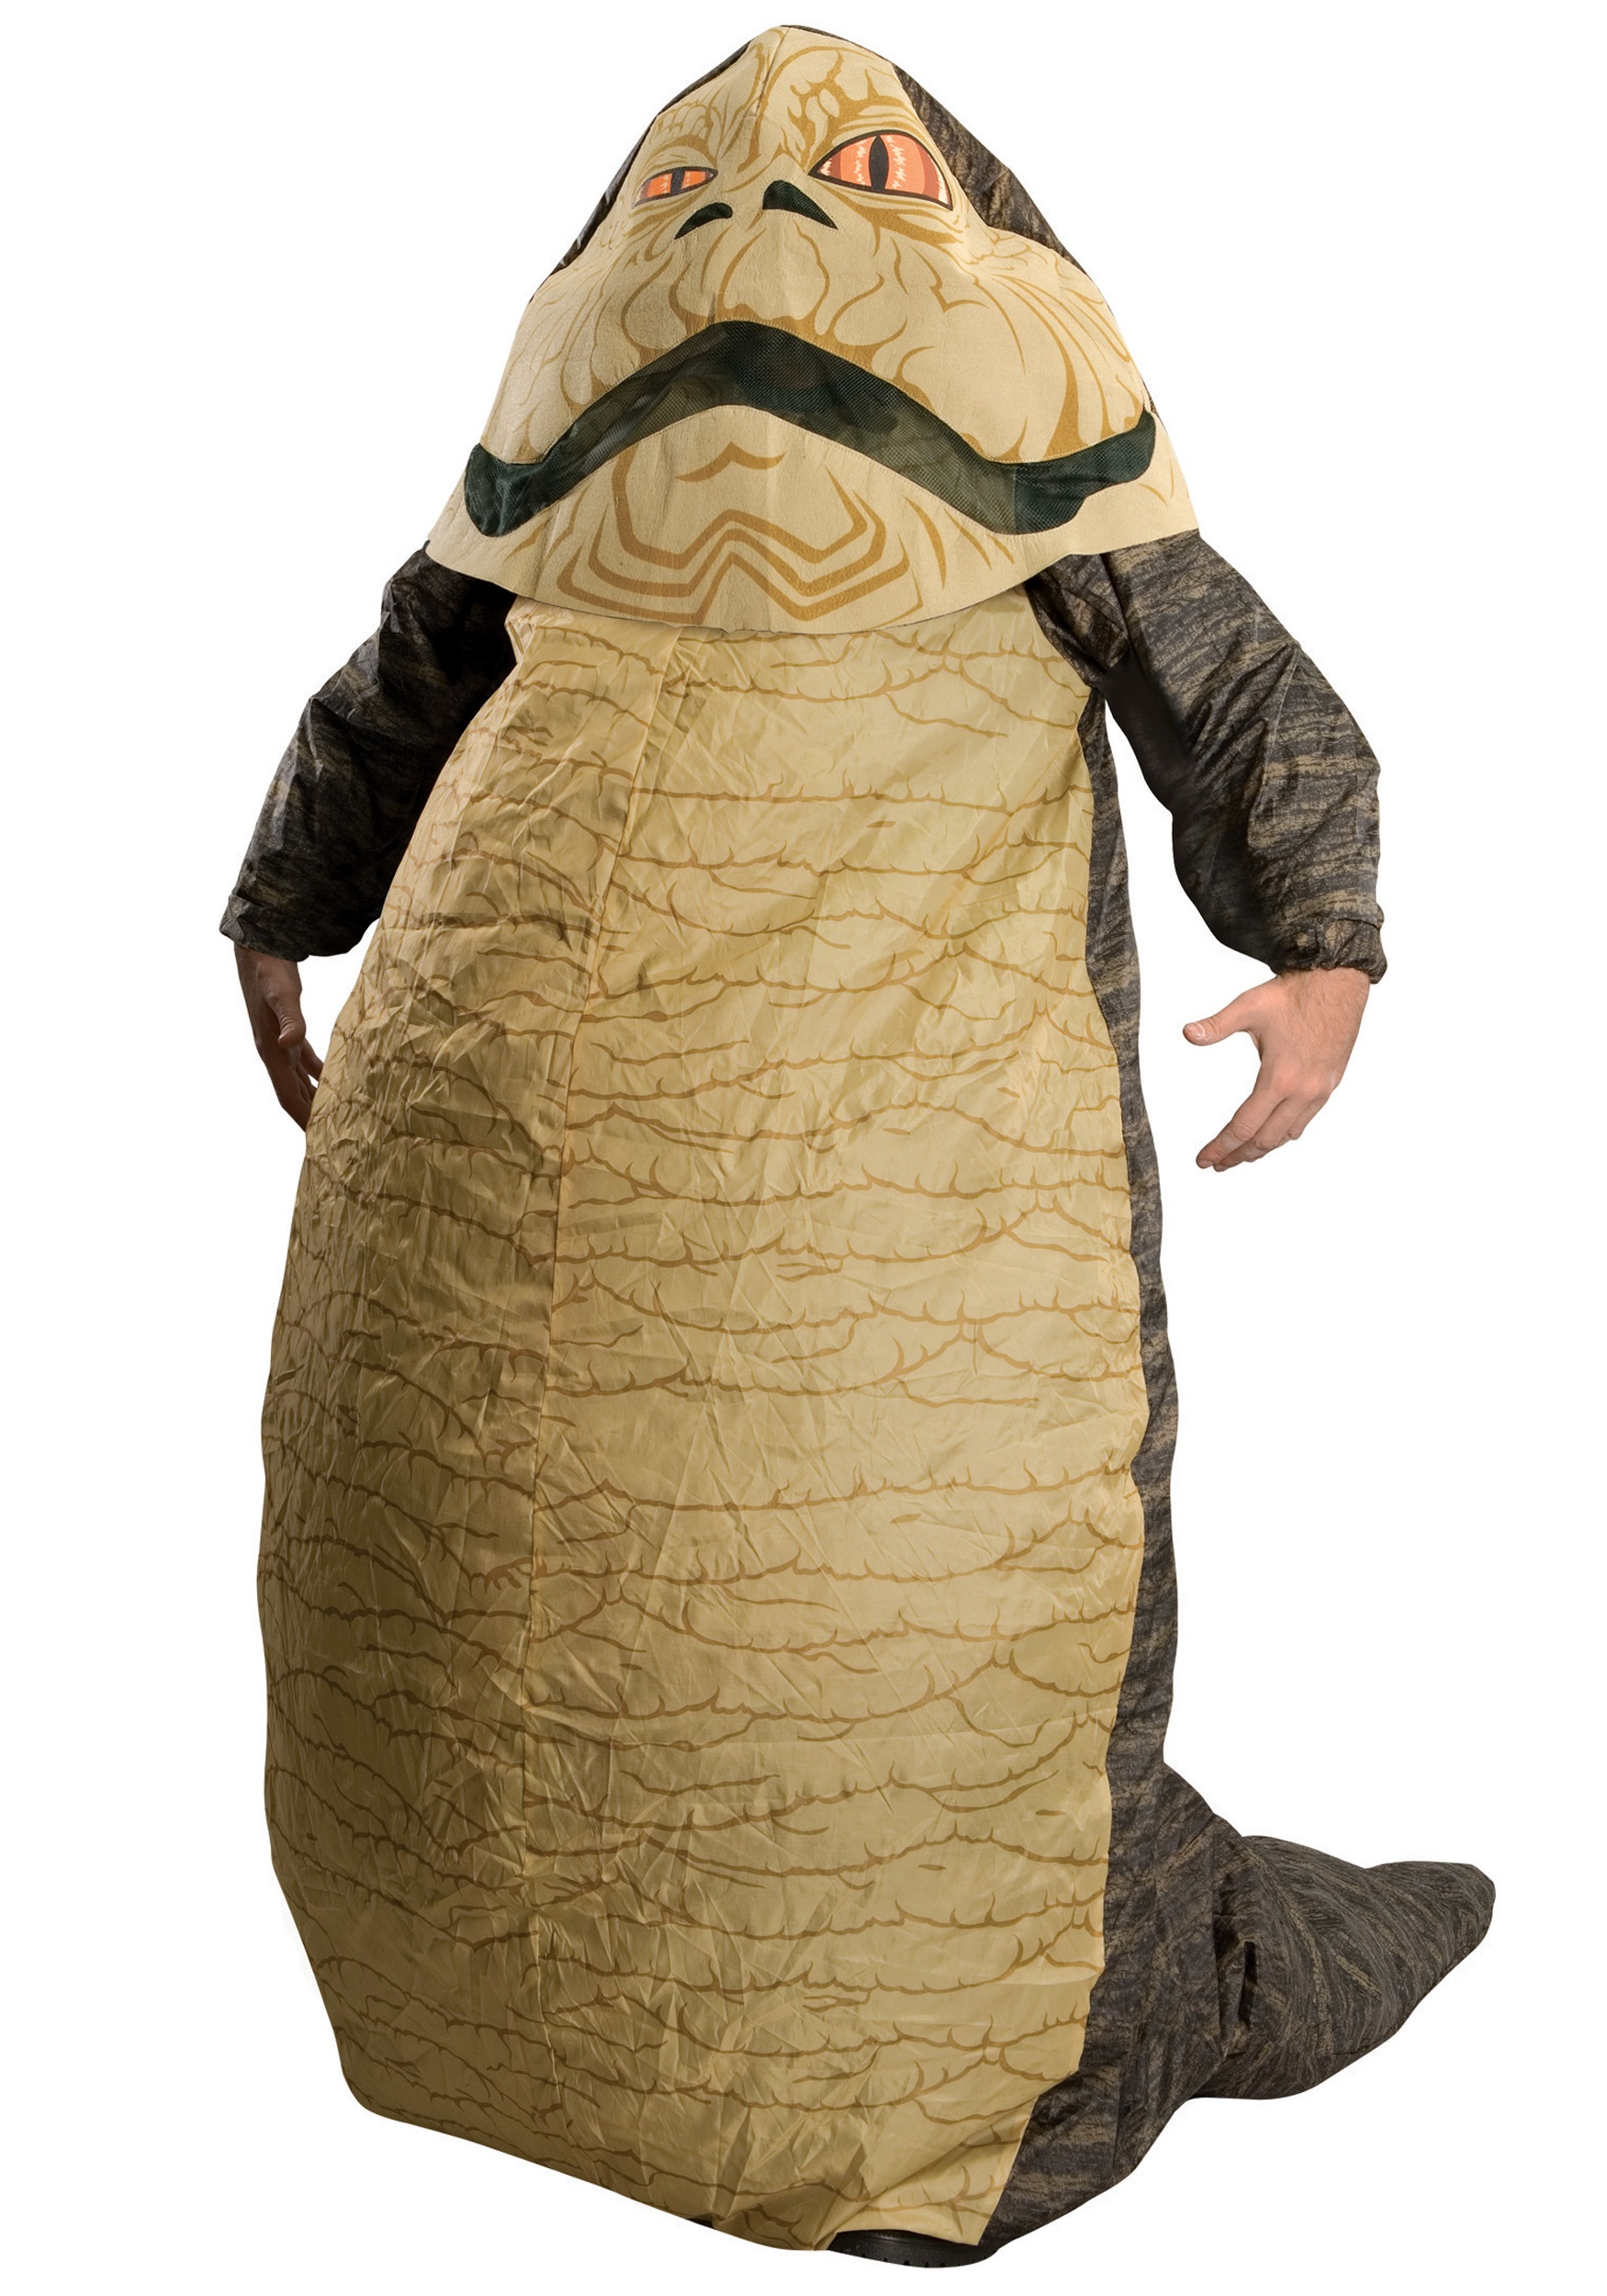 Adult Jabba the Hutt Costume Jabba The Hutt Costume For Dogs